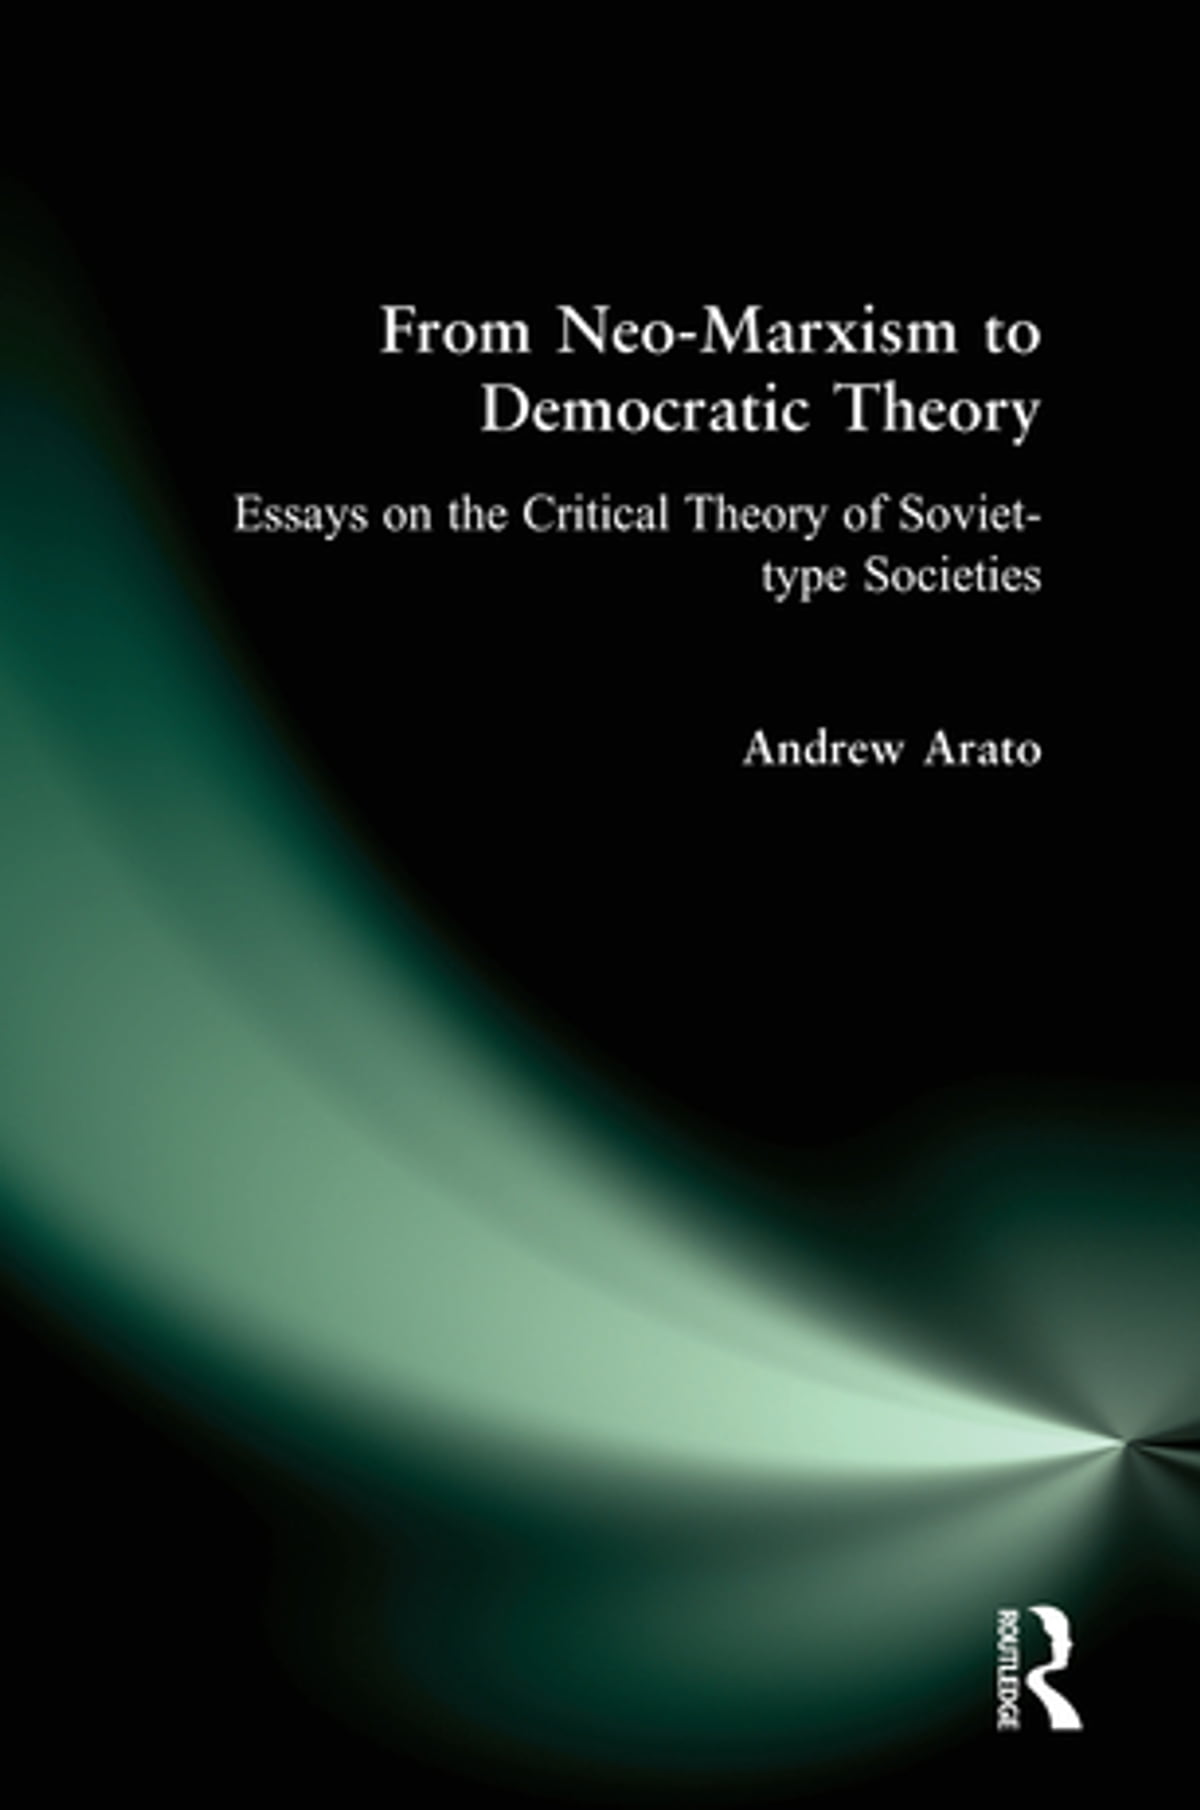 Essay On Importance Of English Language From Neomarxism To Democratic Theory Essays On The Critical Theory Of  Soviettype Societies Ebook By Andrew Arato    Rakuten Kobo How To Write Science Essay also Controversial Essay Topics For Research Paper From Neomarxism To Democratic Theory Essays On The Critical Theory  Argumentative Essay Thesis Statement Examples